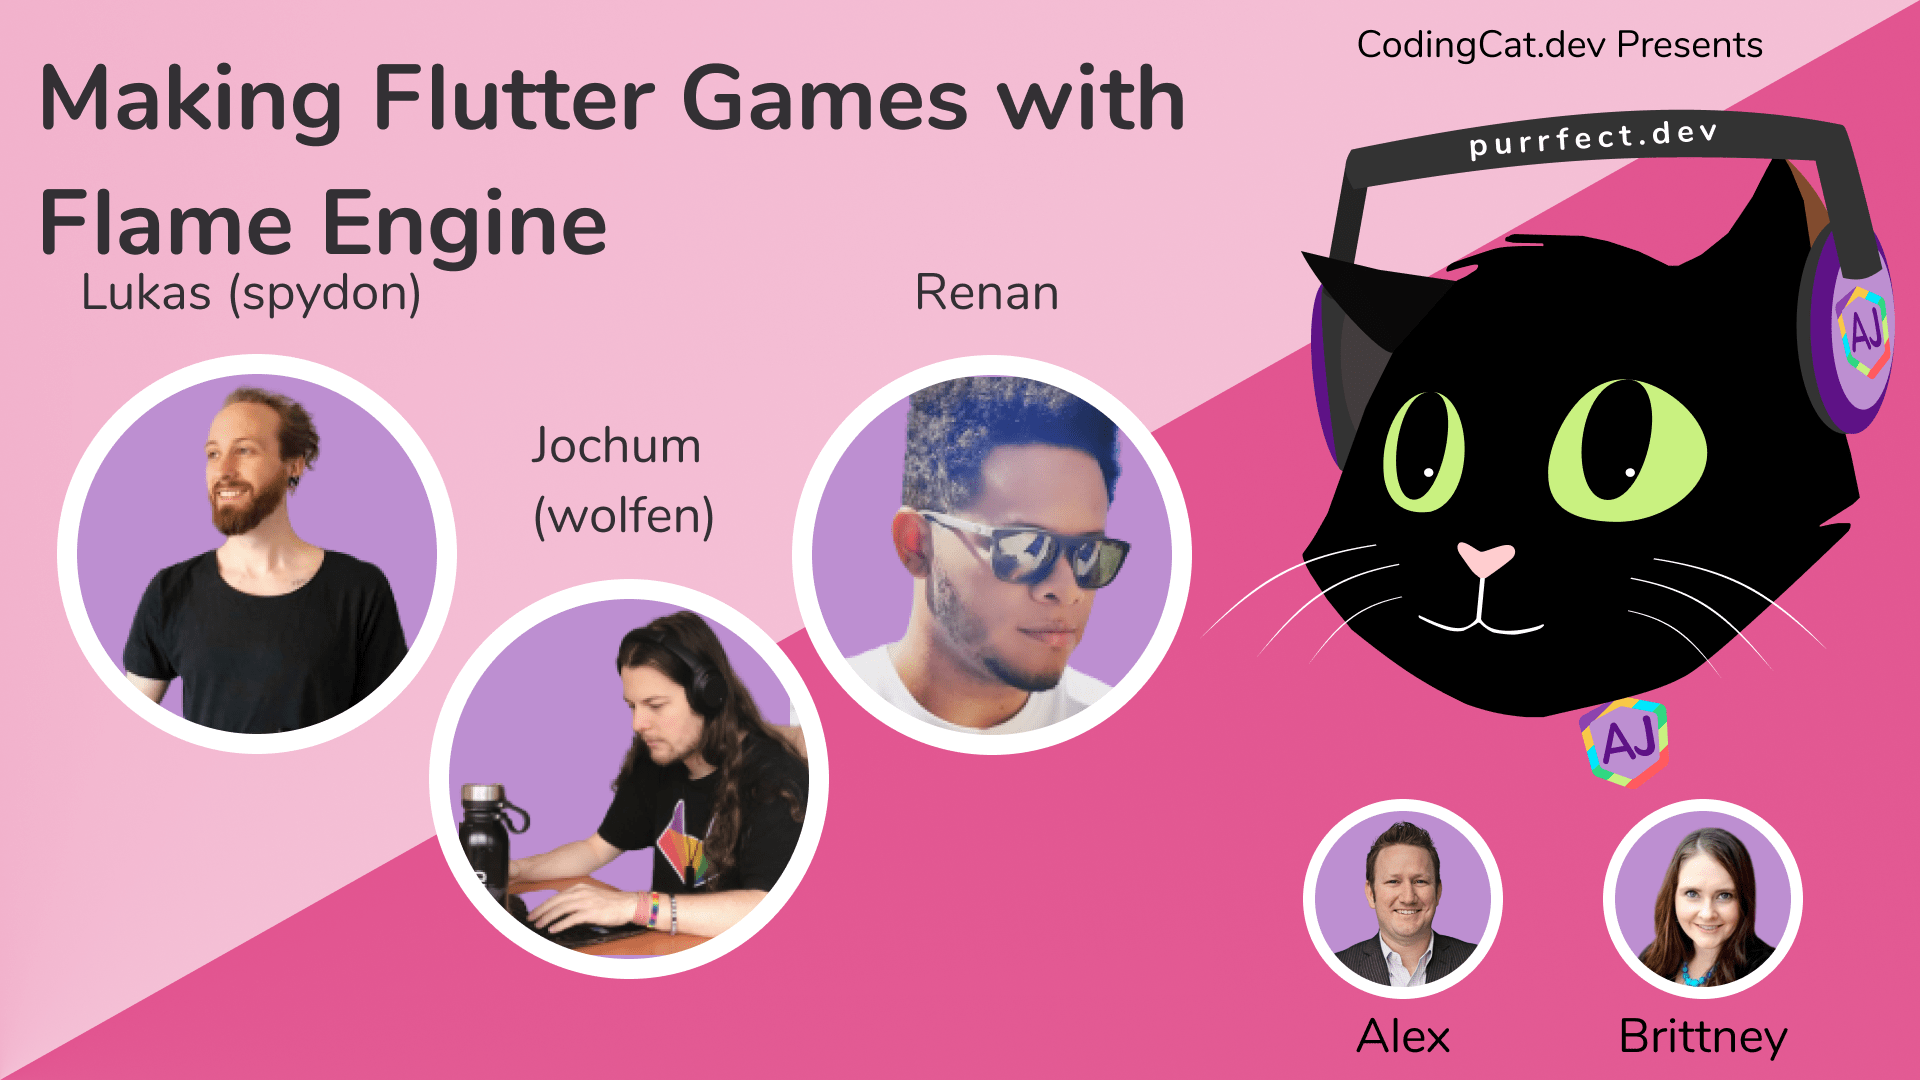 1.34 - Making Flutter Games with Flame Engine